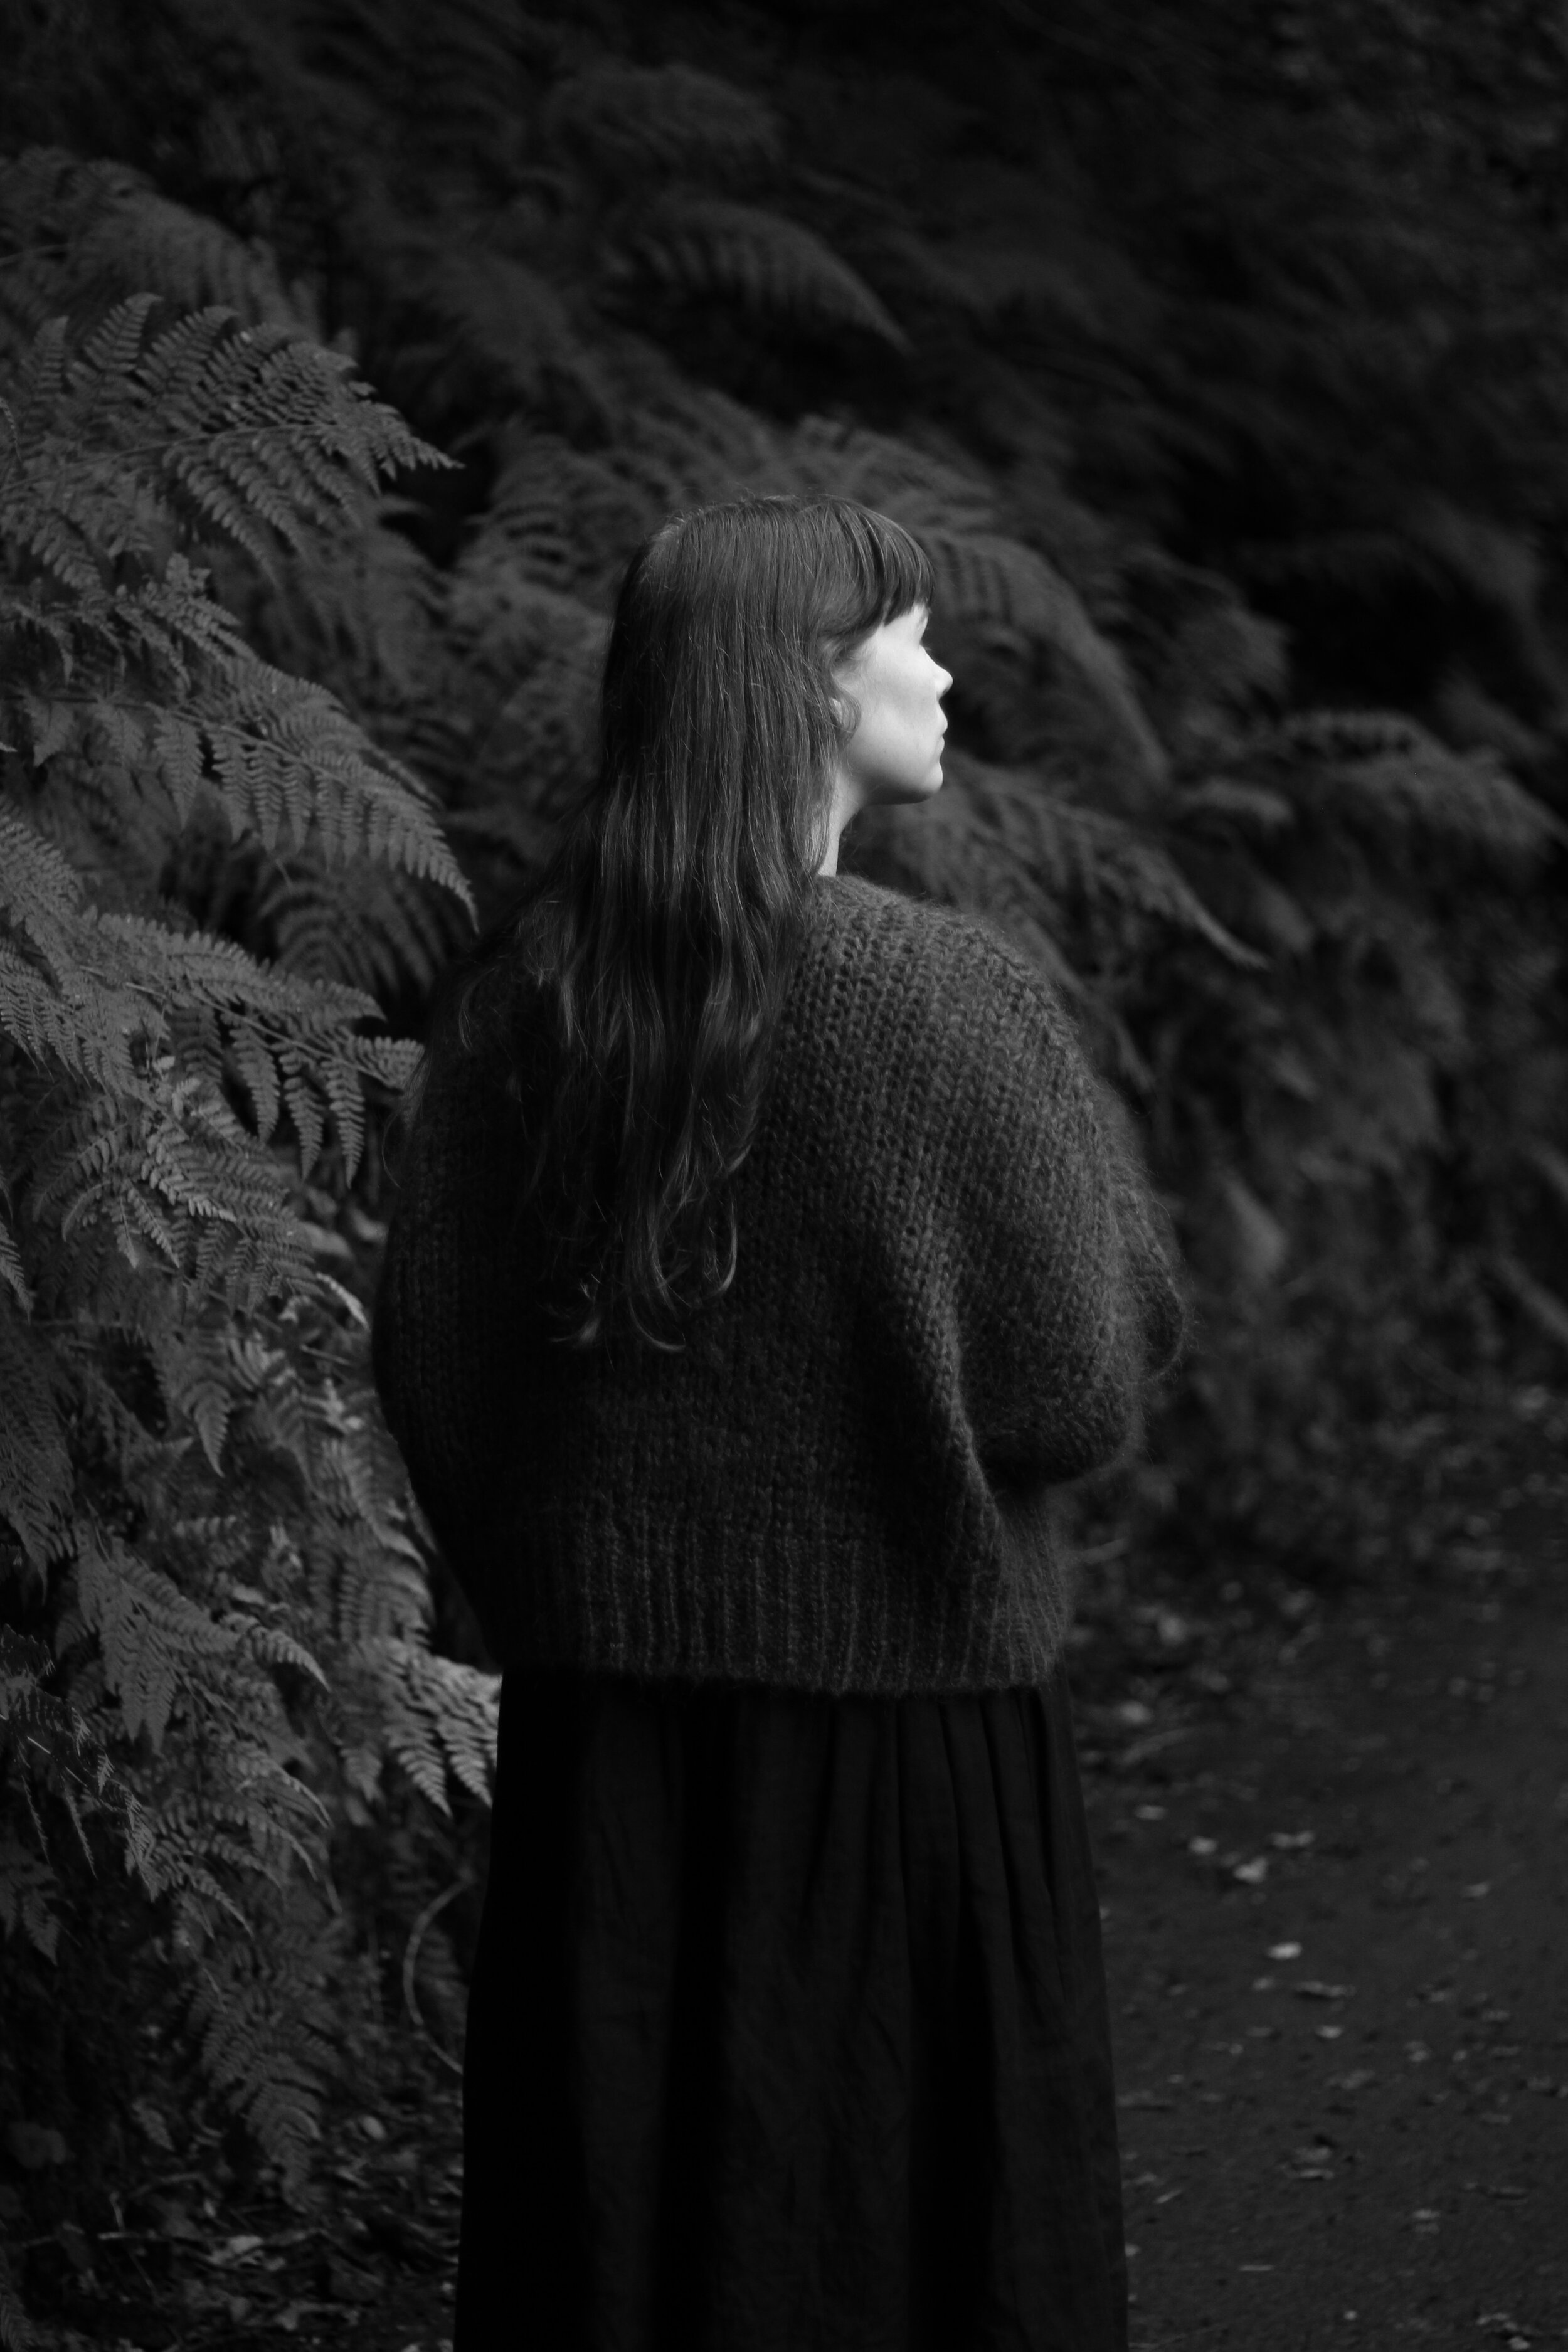 Black and white, girl in forest | Field + Nest